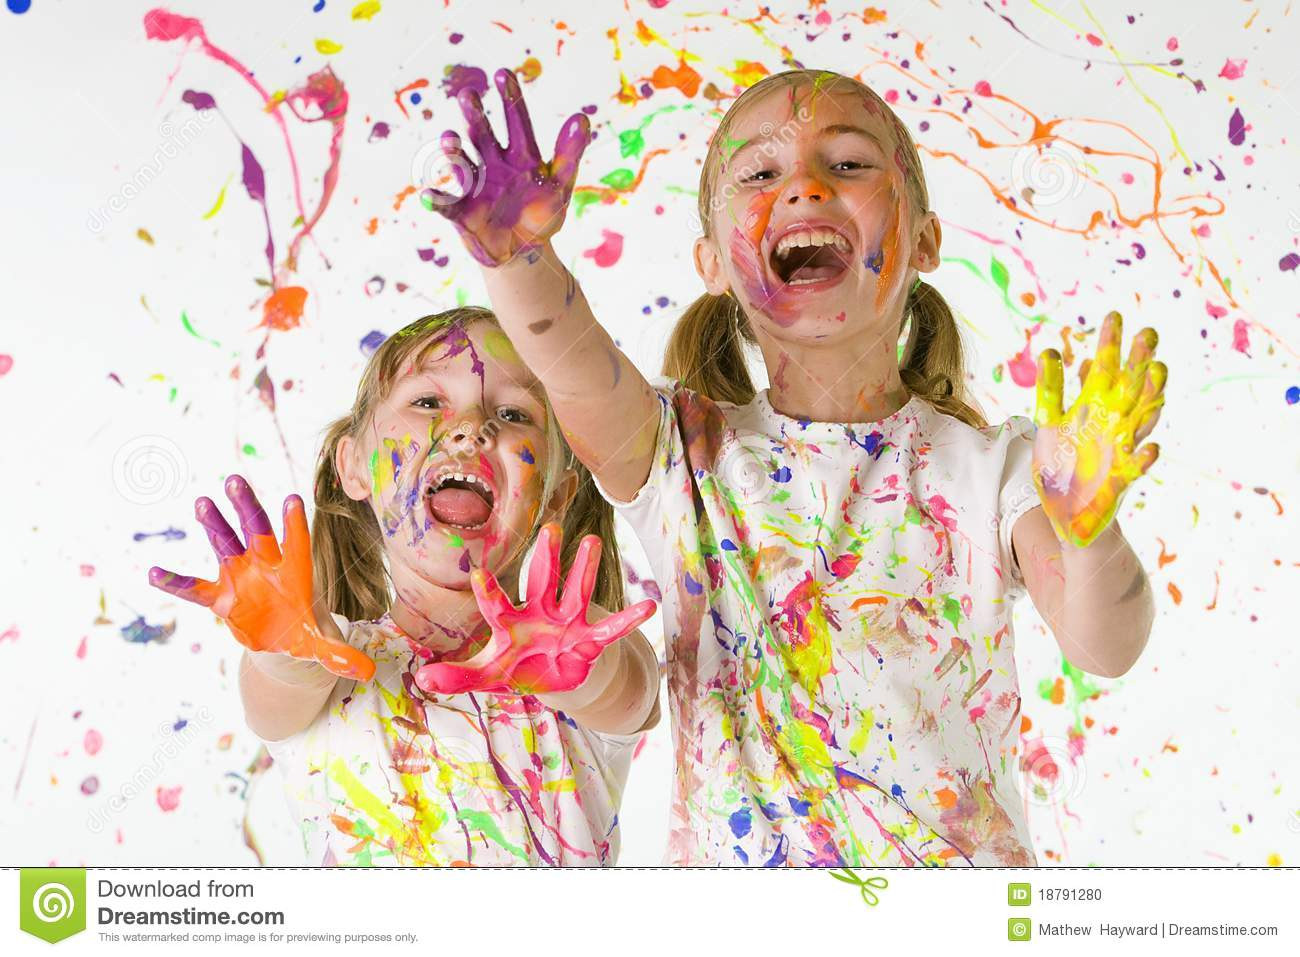 Kids playing in paint